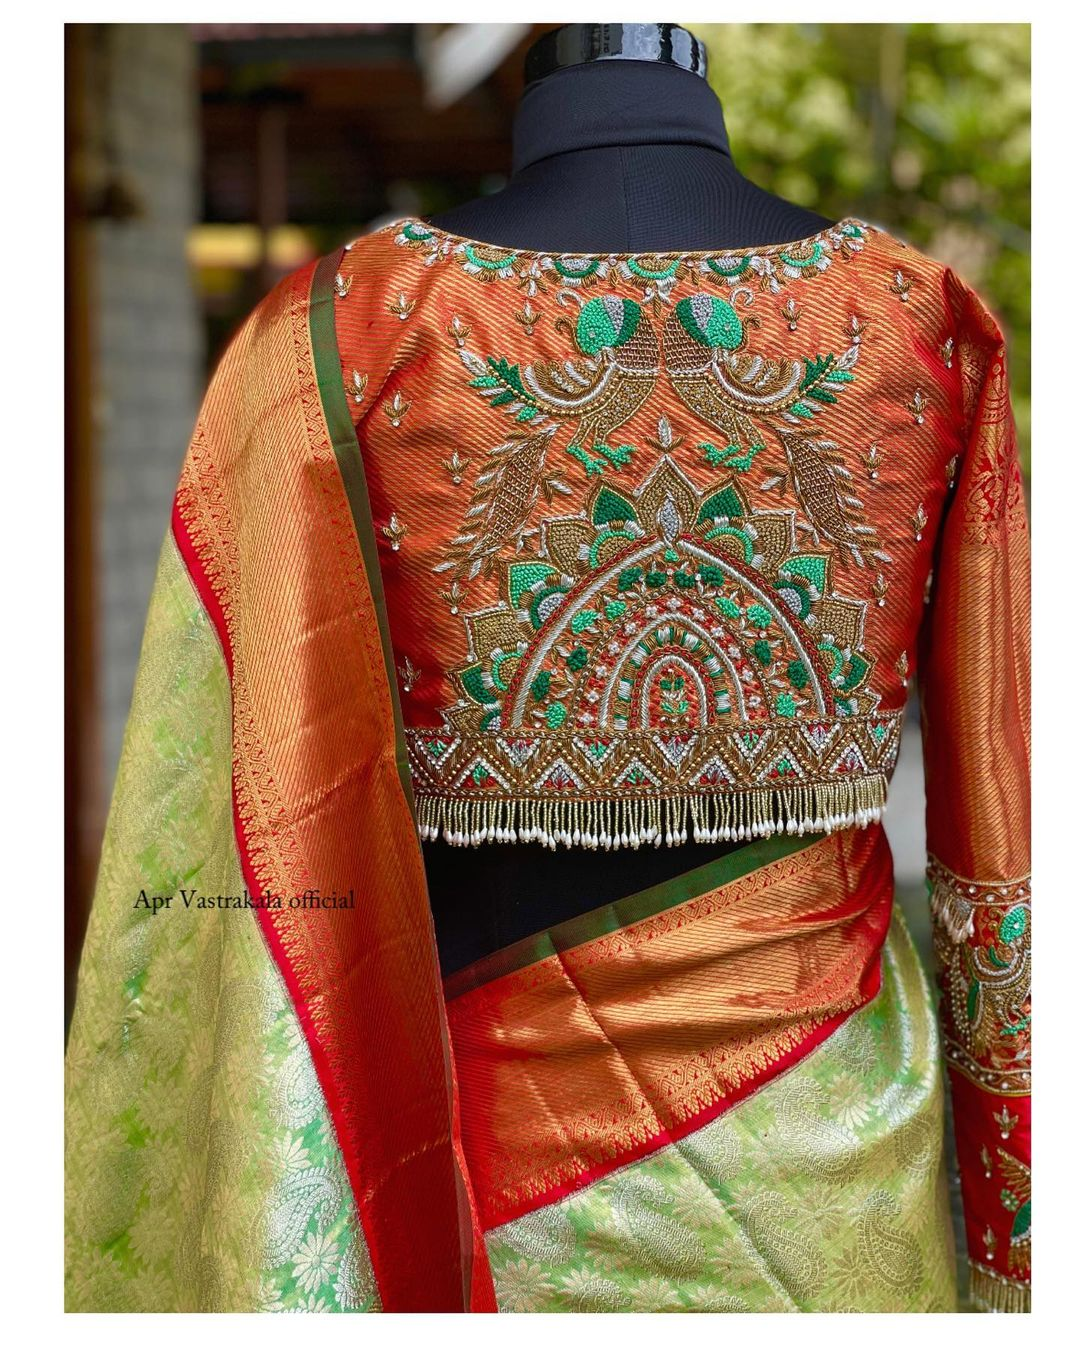 Beautiful bridal blouse with peacock hand embroidery thread maggam work. 2021-09-21